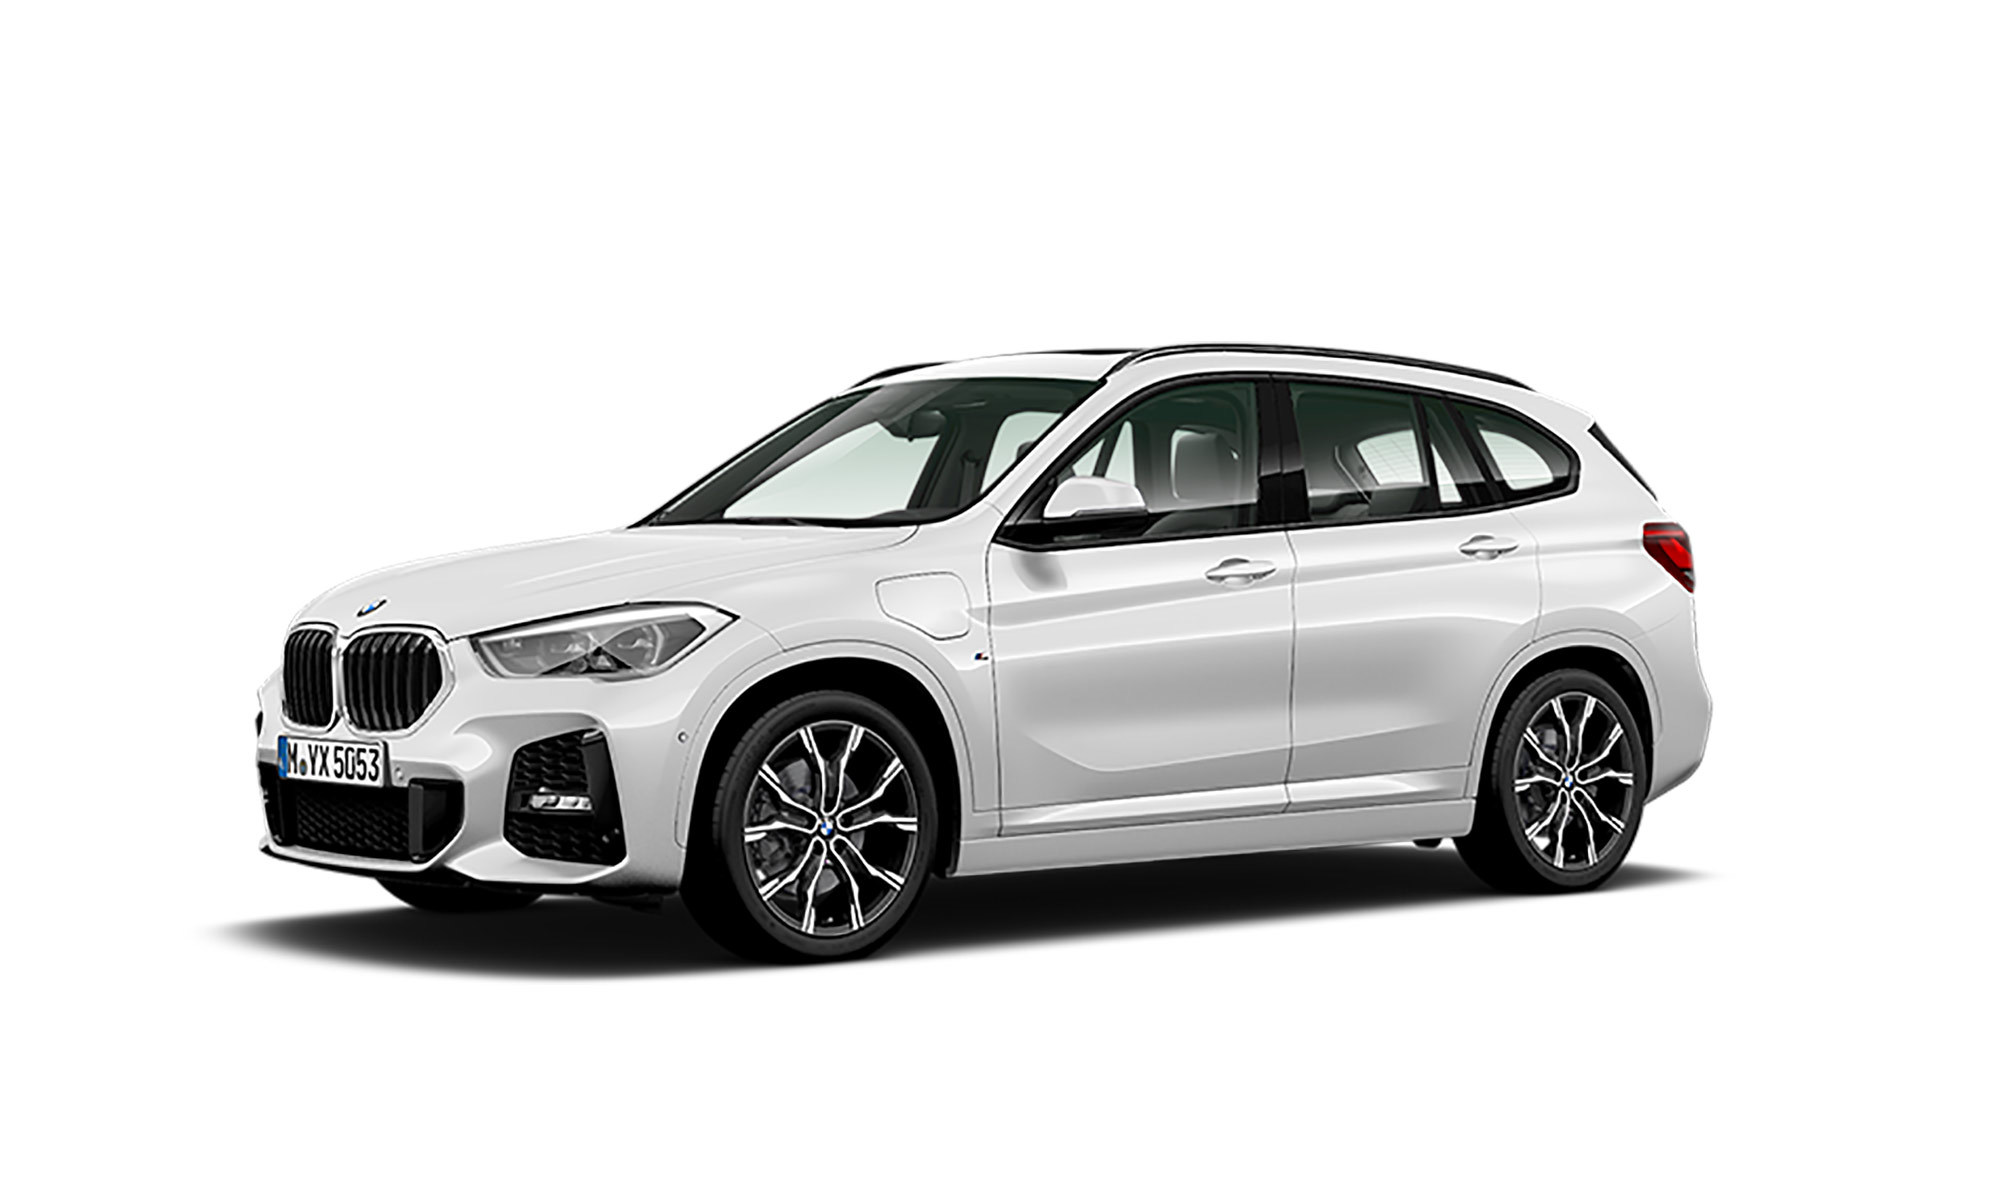 Bmw X1 White Background